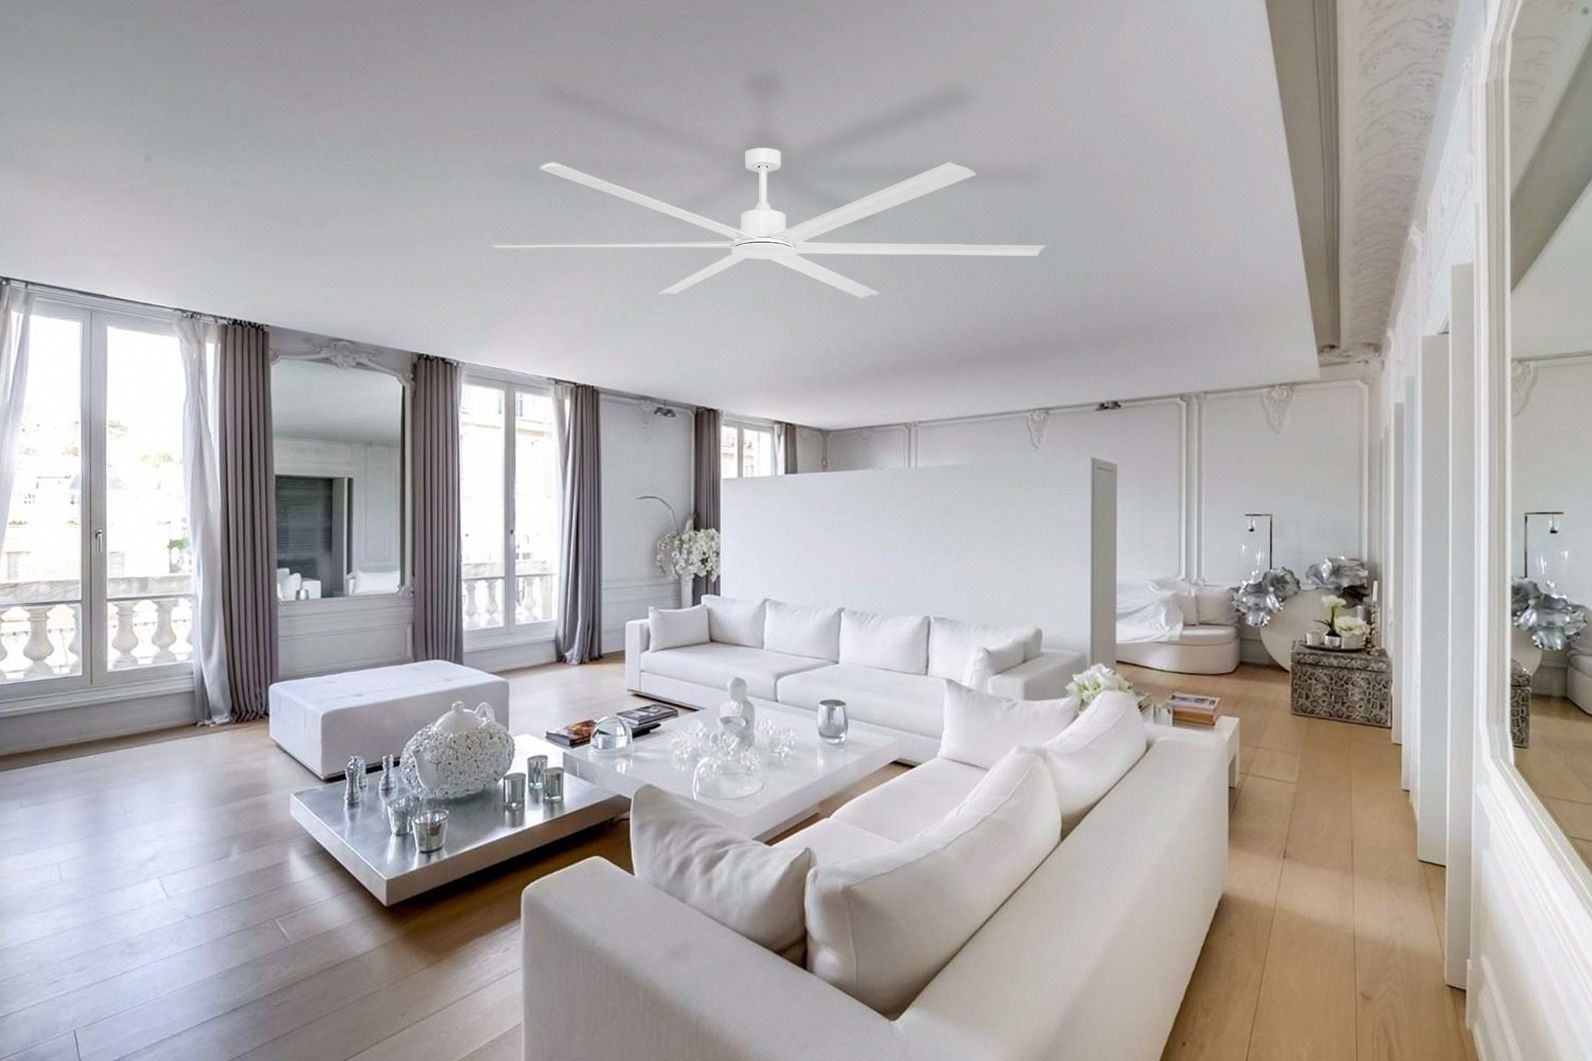 Hercules Ceiling Fan Dc Motor 84 With Remote White Lumera Living Luxury Homes Apartment Design Home